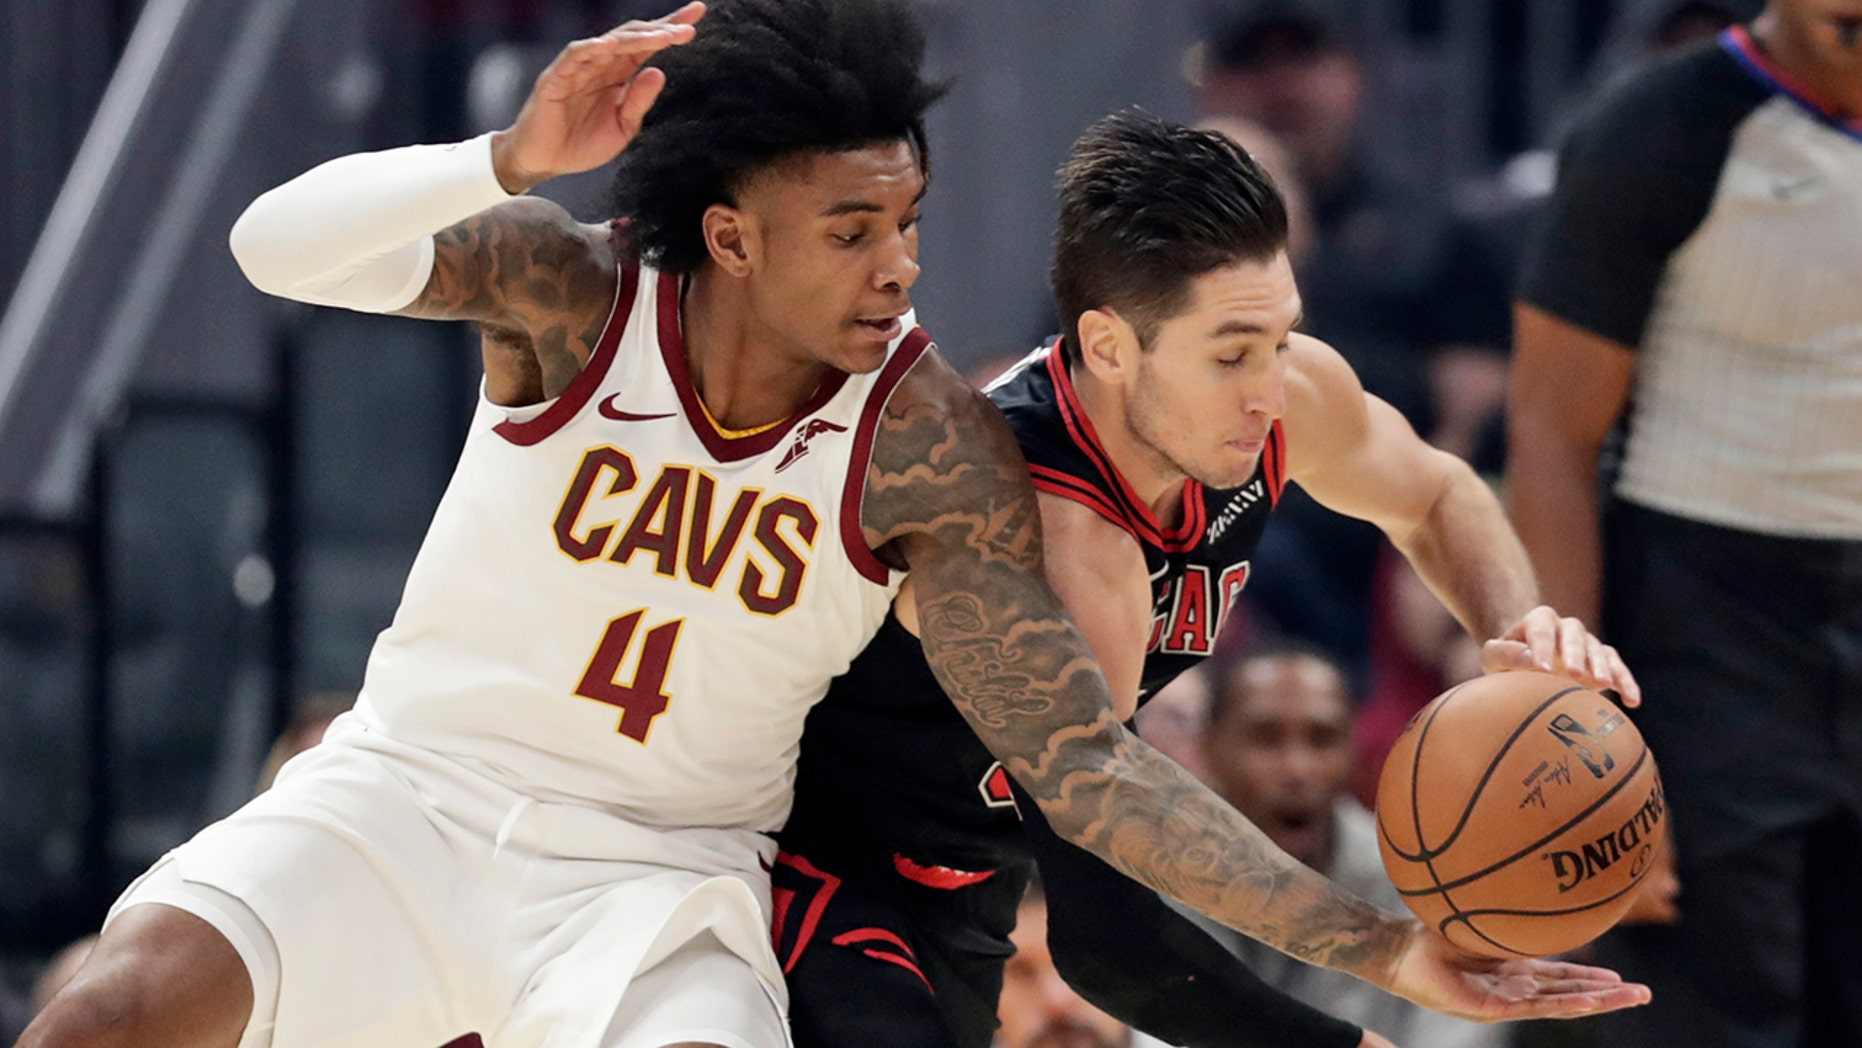 Cavs' Porter suspended 1 game for making contact with official